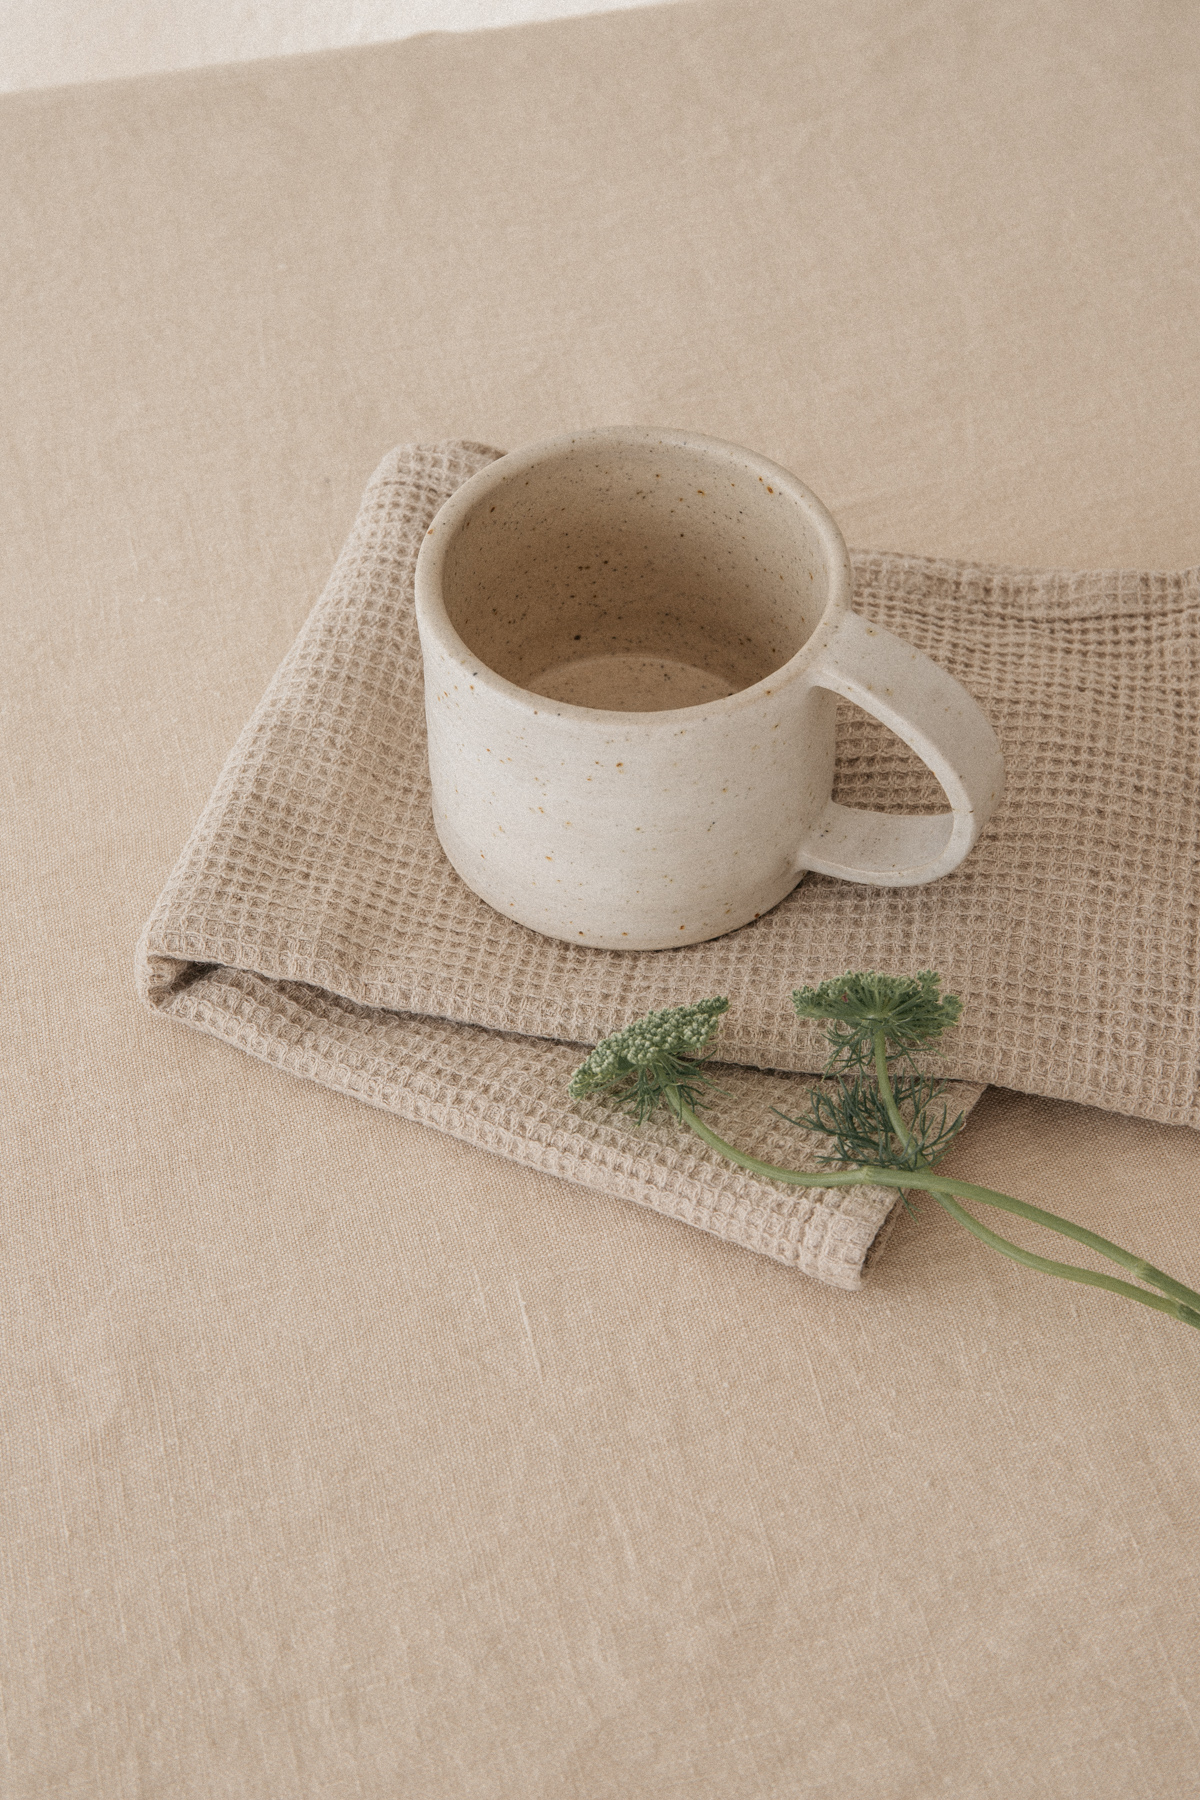 Handmade Ceramic Whitewashed Mug